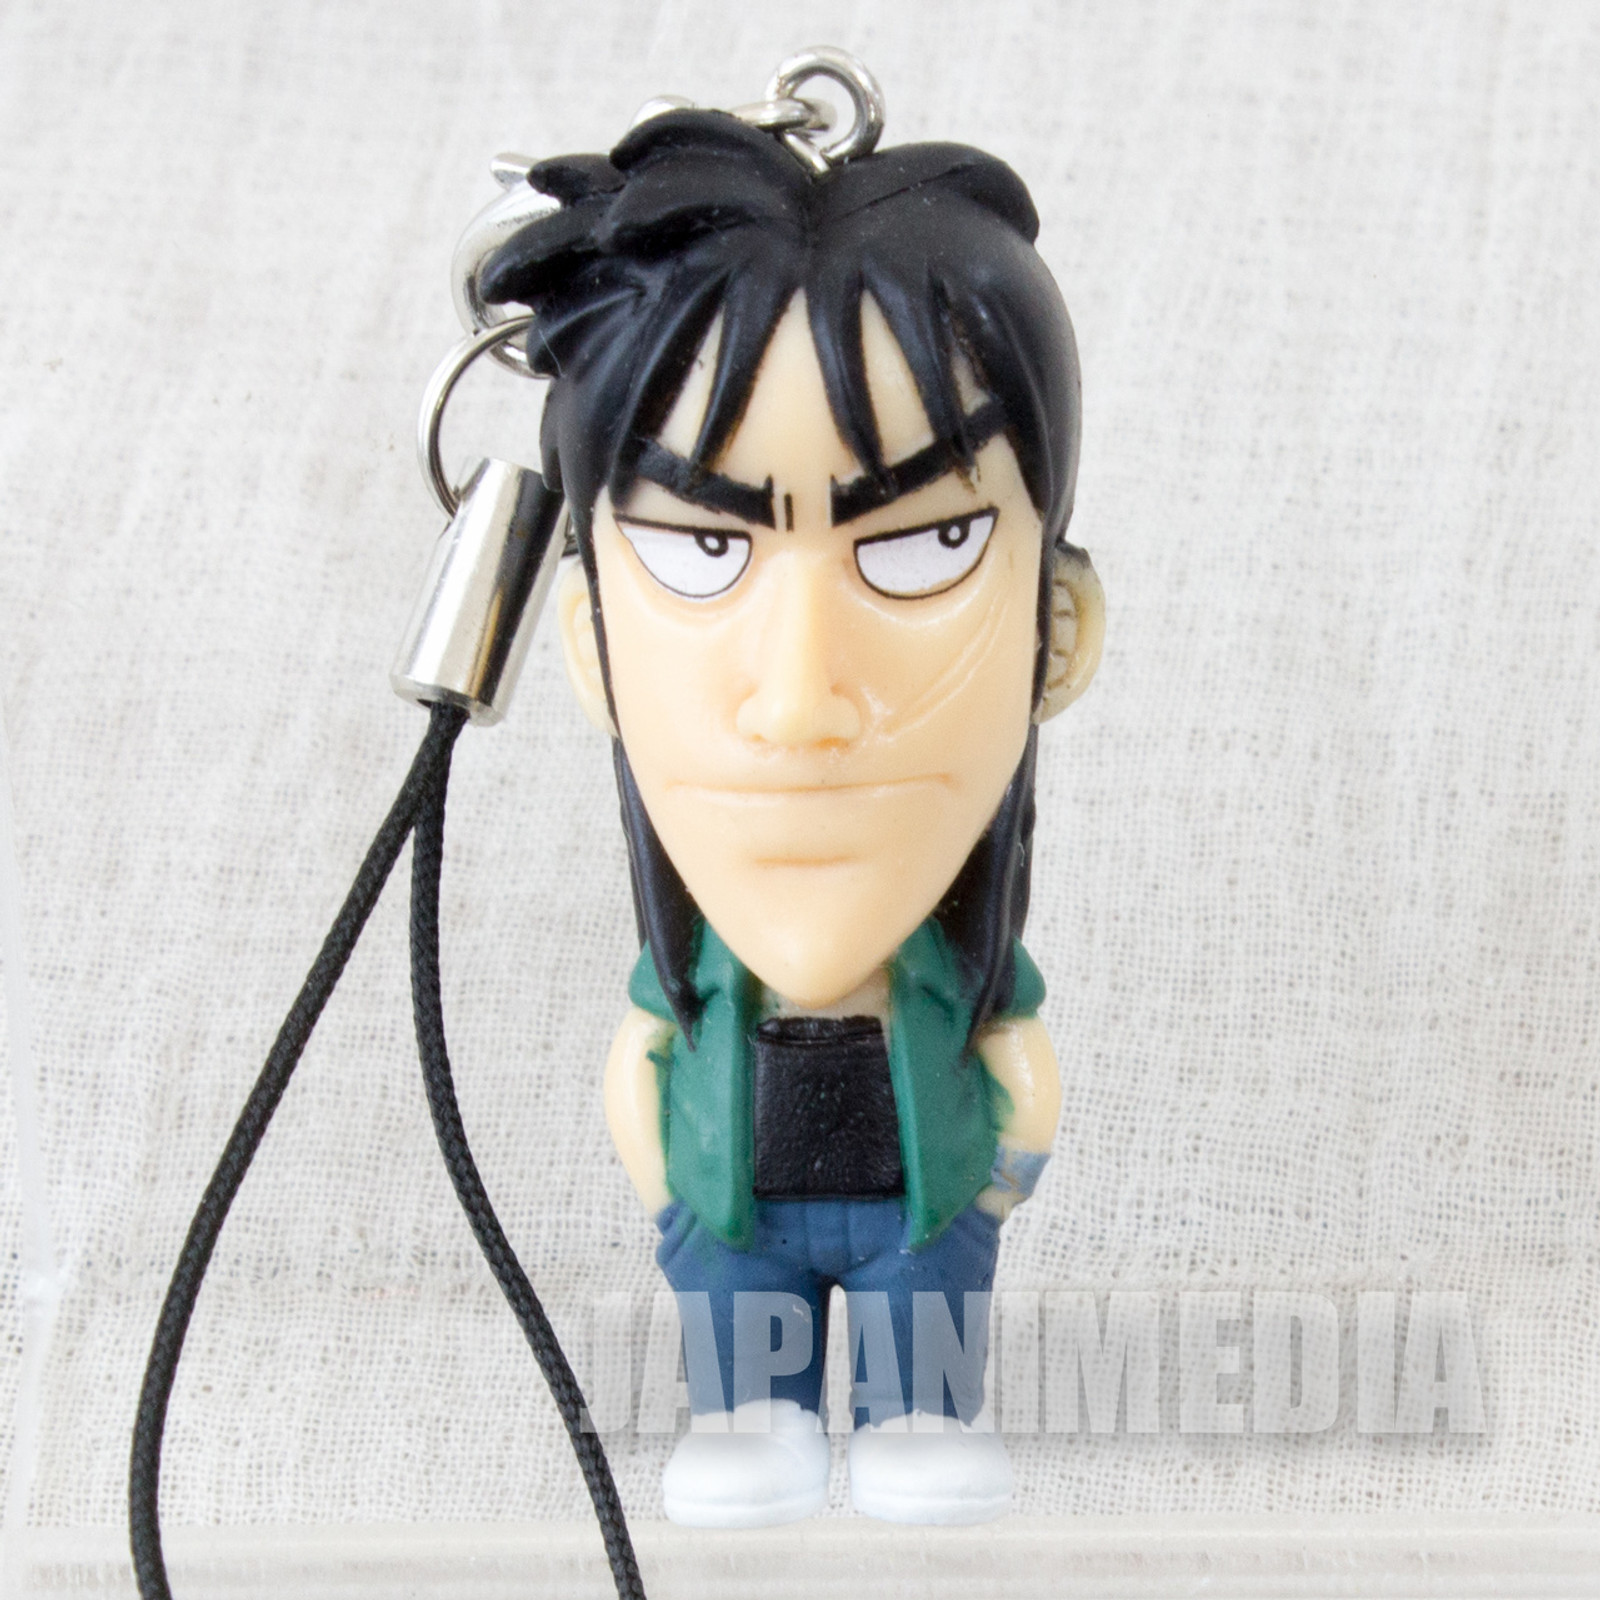 KAIJI Ultimate Survivor Kaiji Ito Figure Strap JAPAN ANIME MANGA